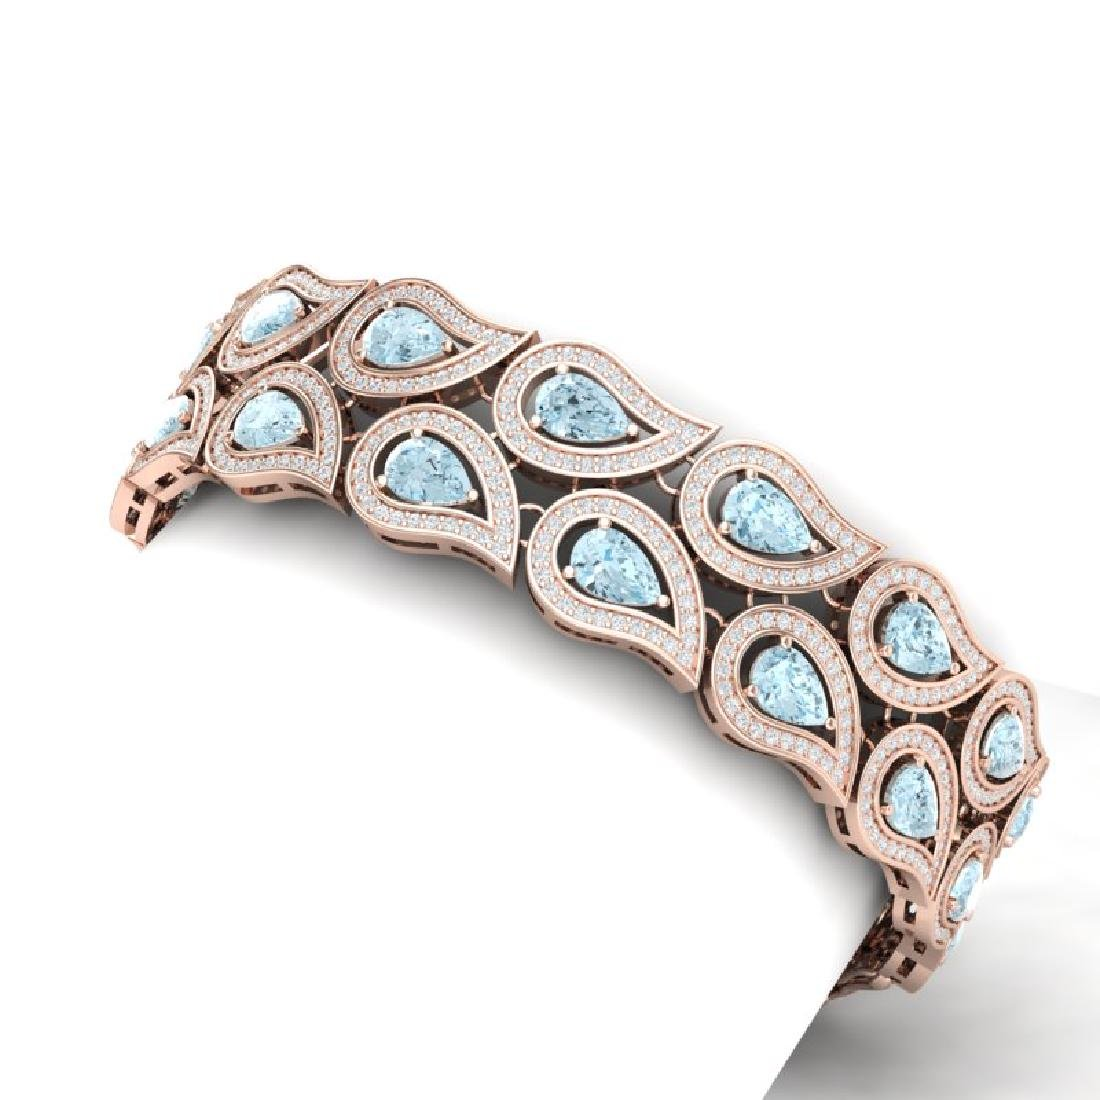 19.62 CTW Royalty Sky Topaz & VS Diamond Bracelet 18K - 2